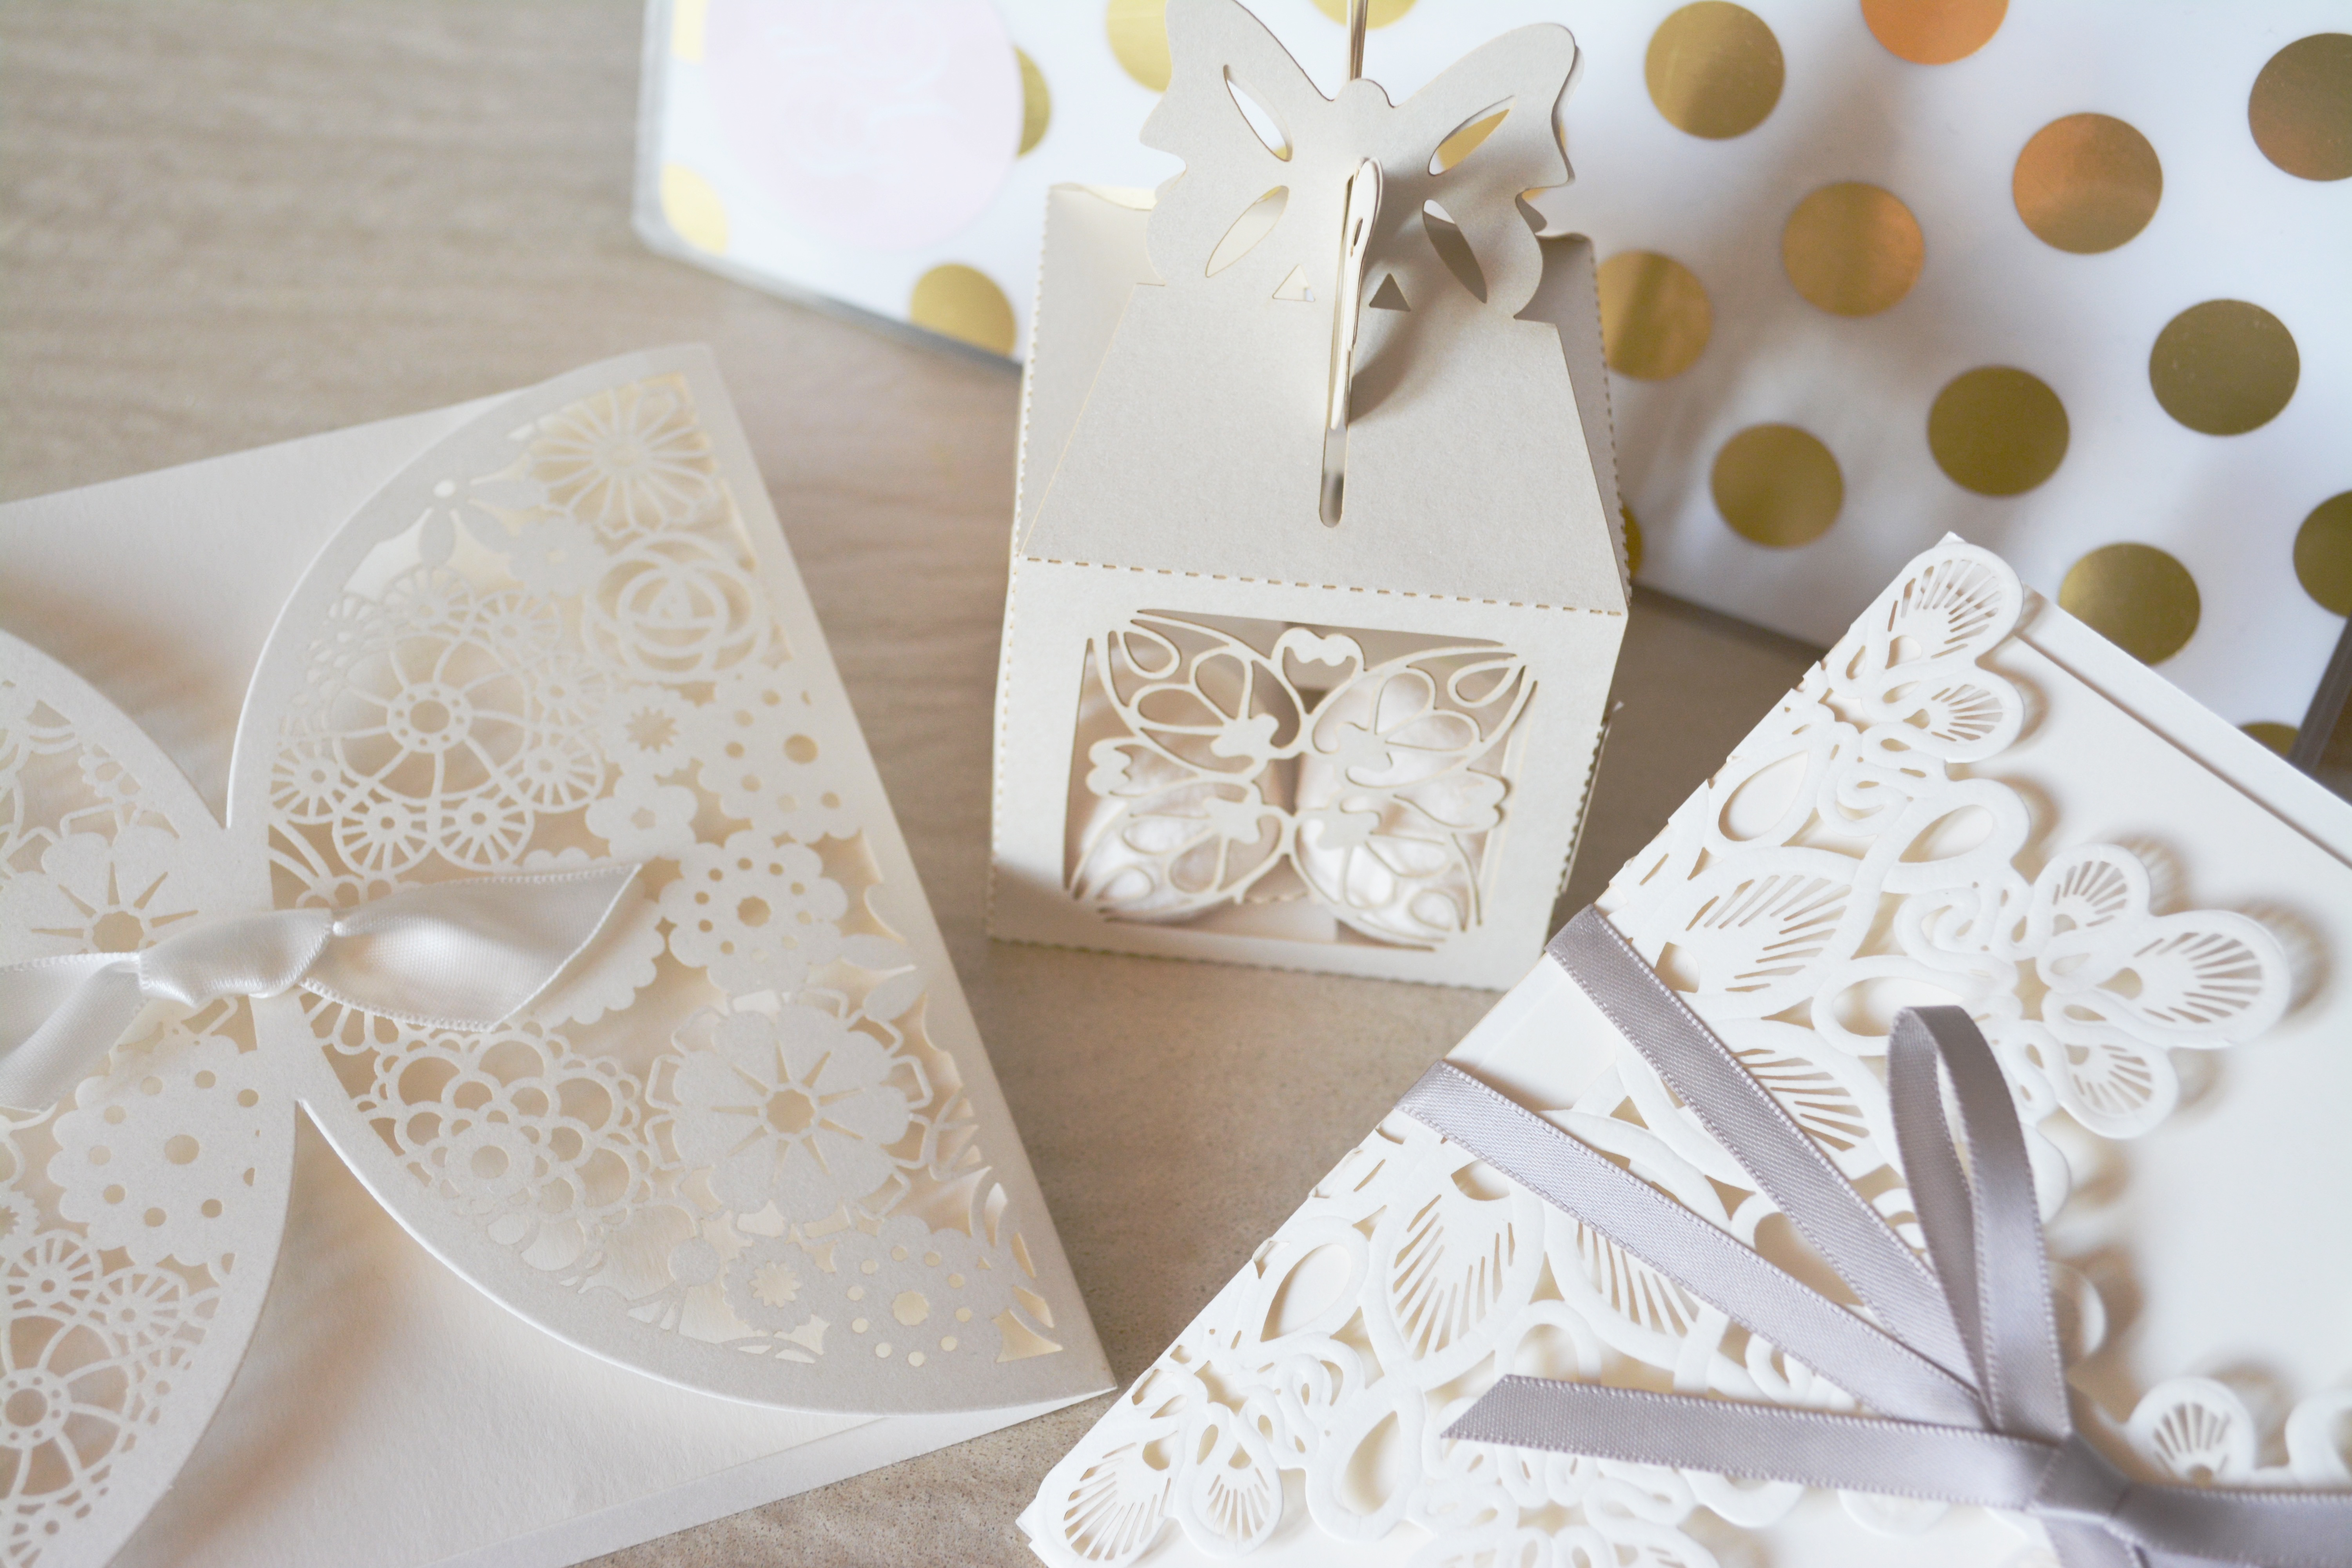 5-Perfect-Ideas-for-Your-Free-Wedding-Website-Pexels-Paper-Goods